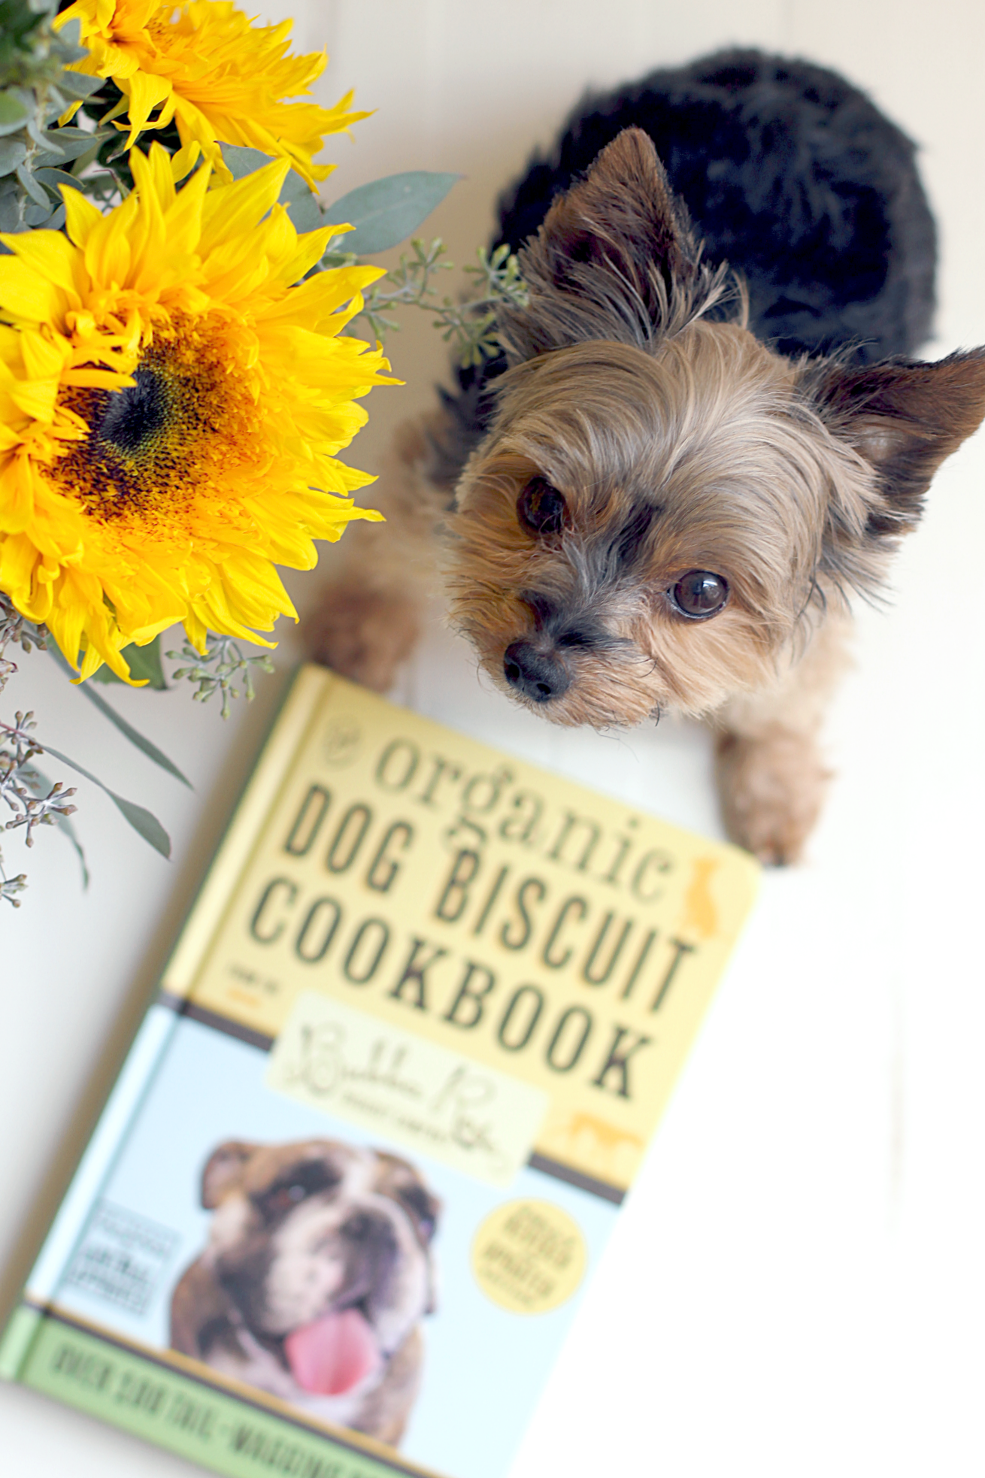 Rookie with Cookbook